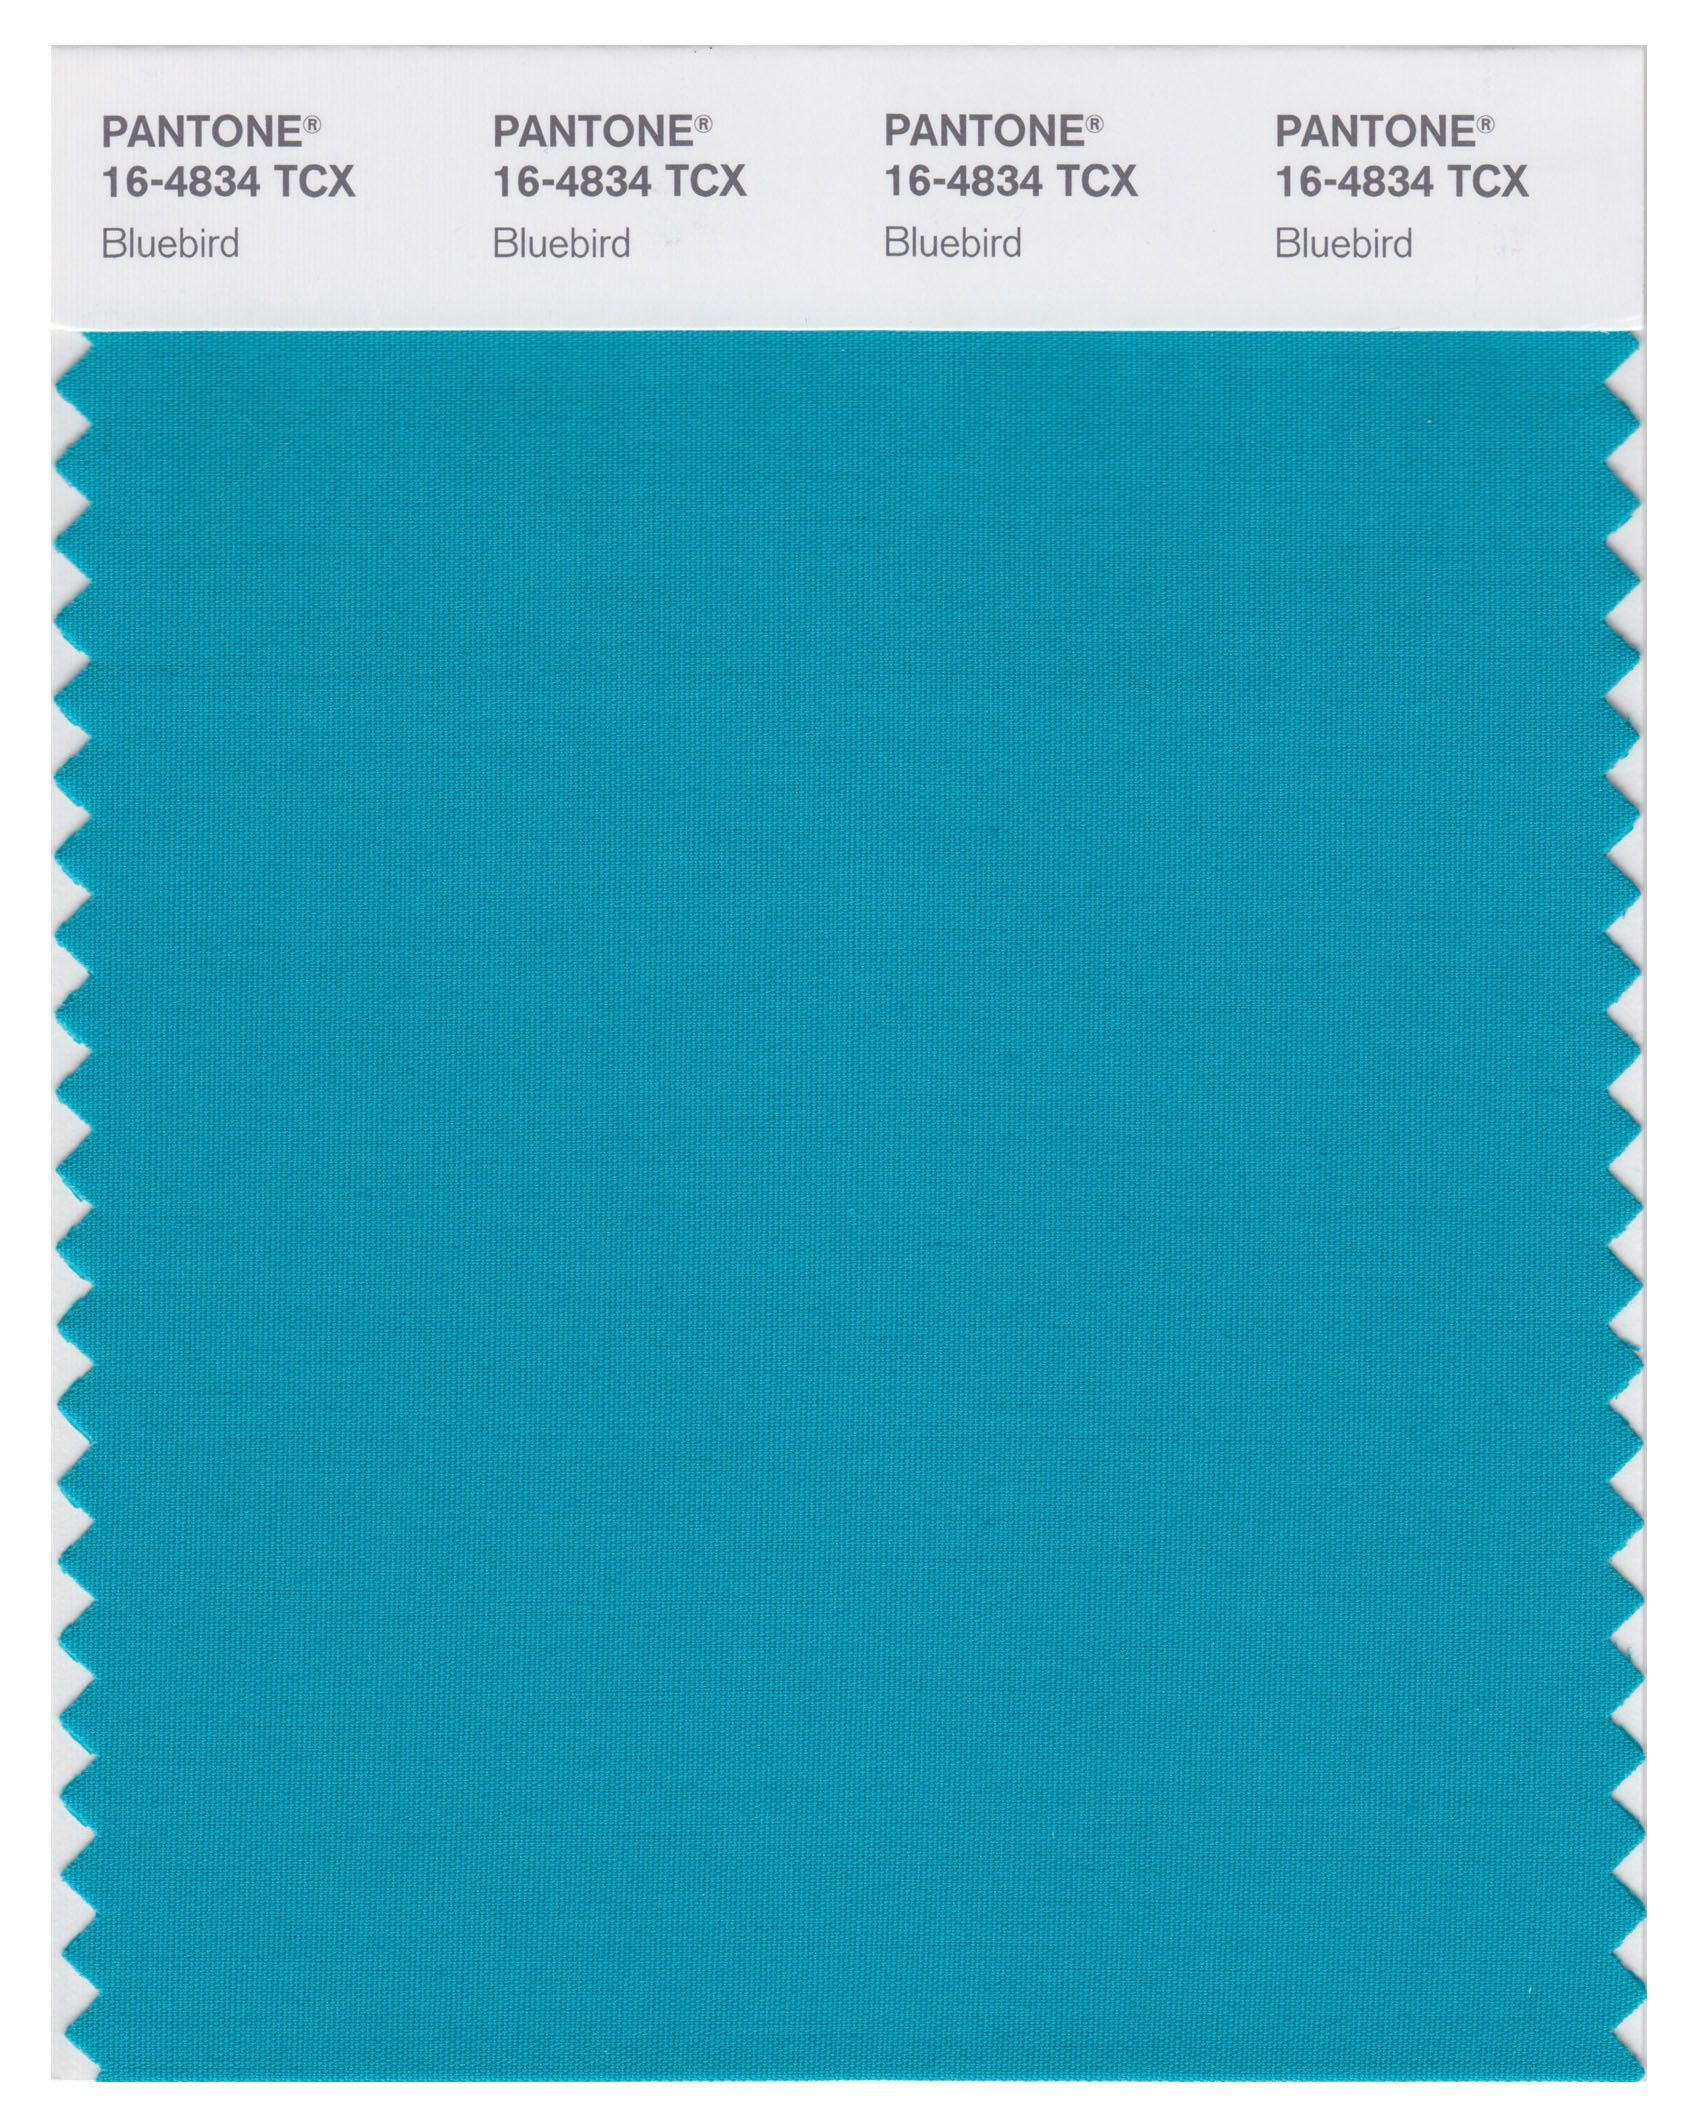 International Magazine Store Nyc Pantone Smart 16 4834 Tcx Color Swatch Card